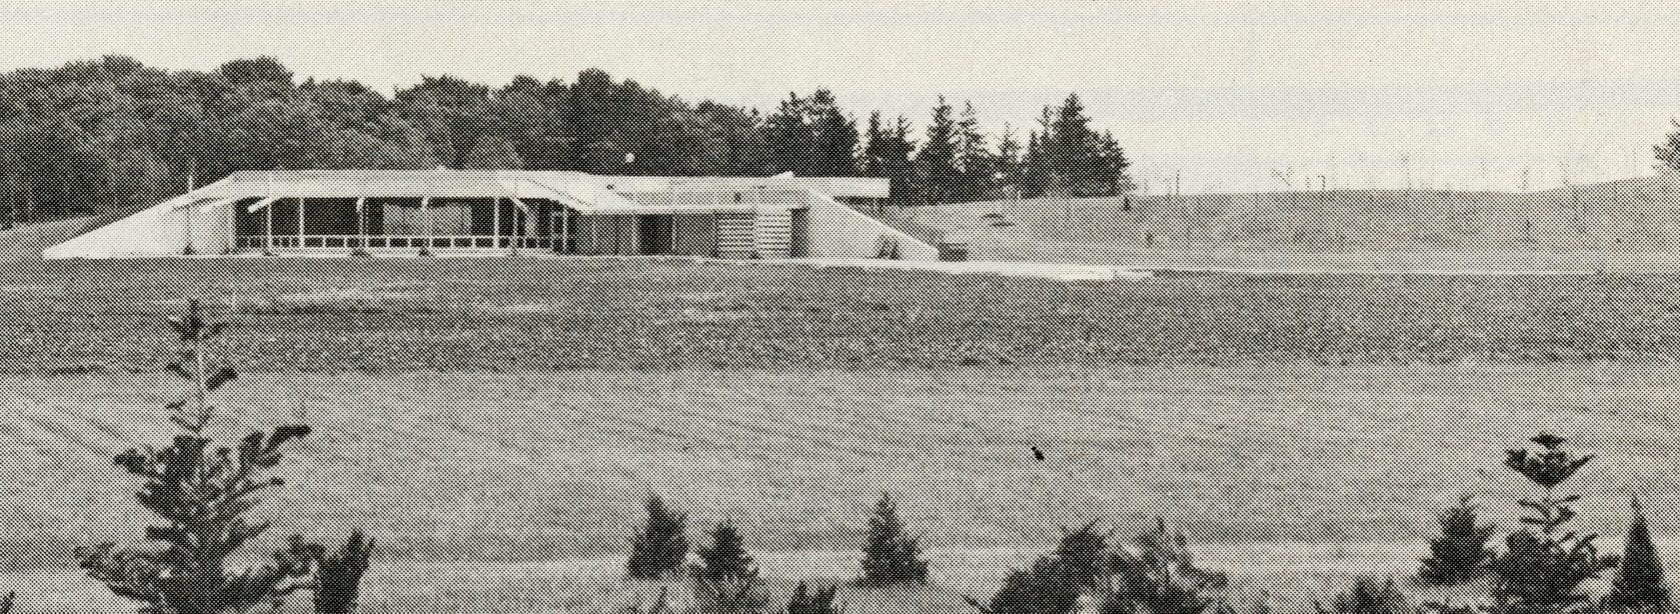 A concrete building with large glass windows sits built into the side of a hill. A large open lawn rests in front of the building. Some small conifer saplings are planted into the lawn at the base of the picture.